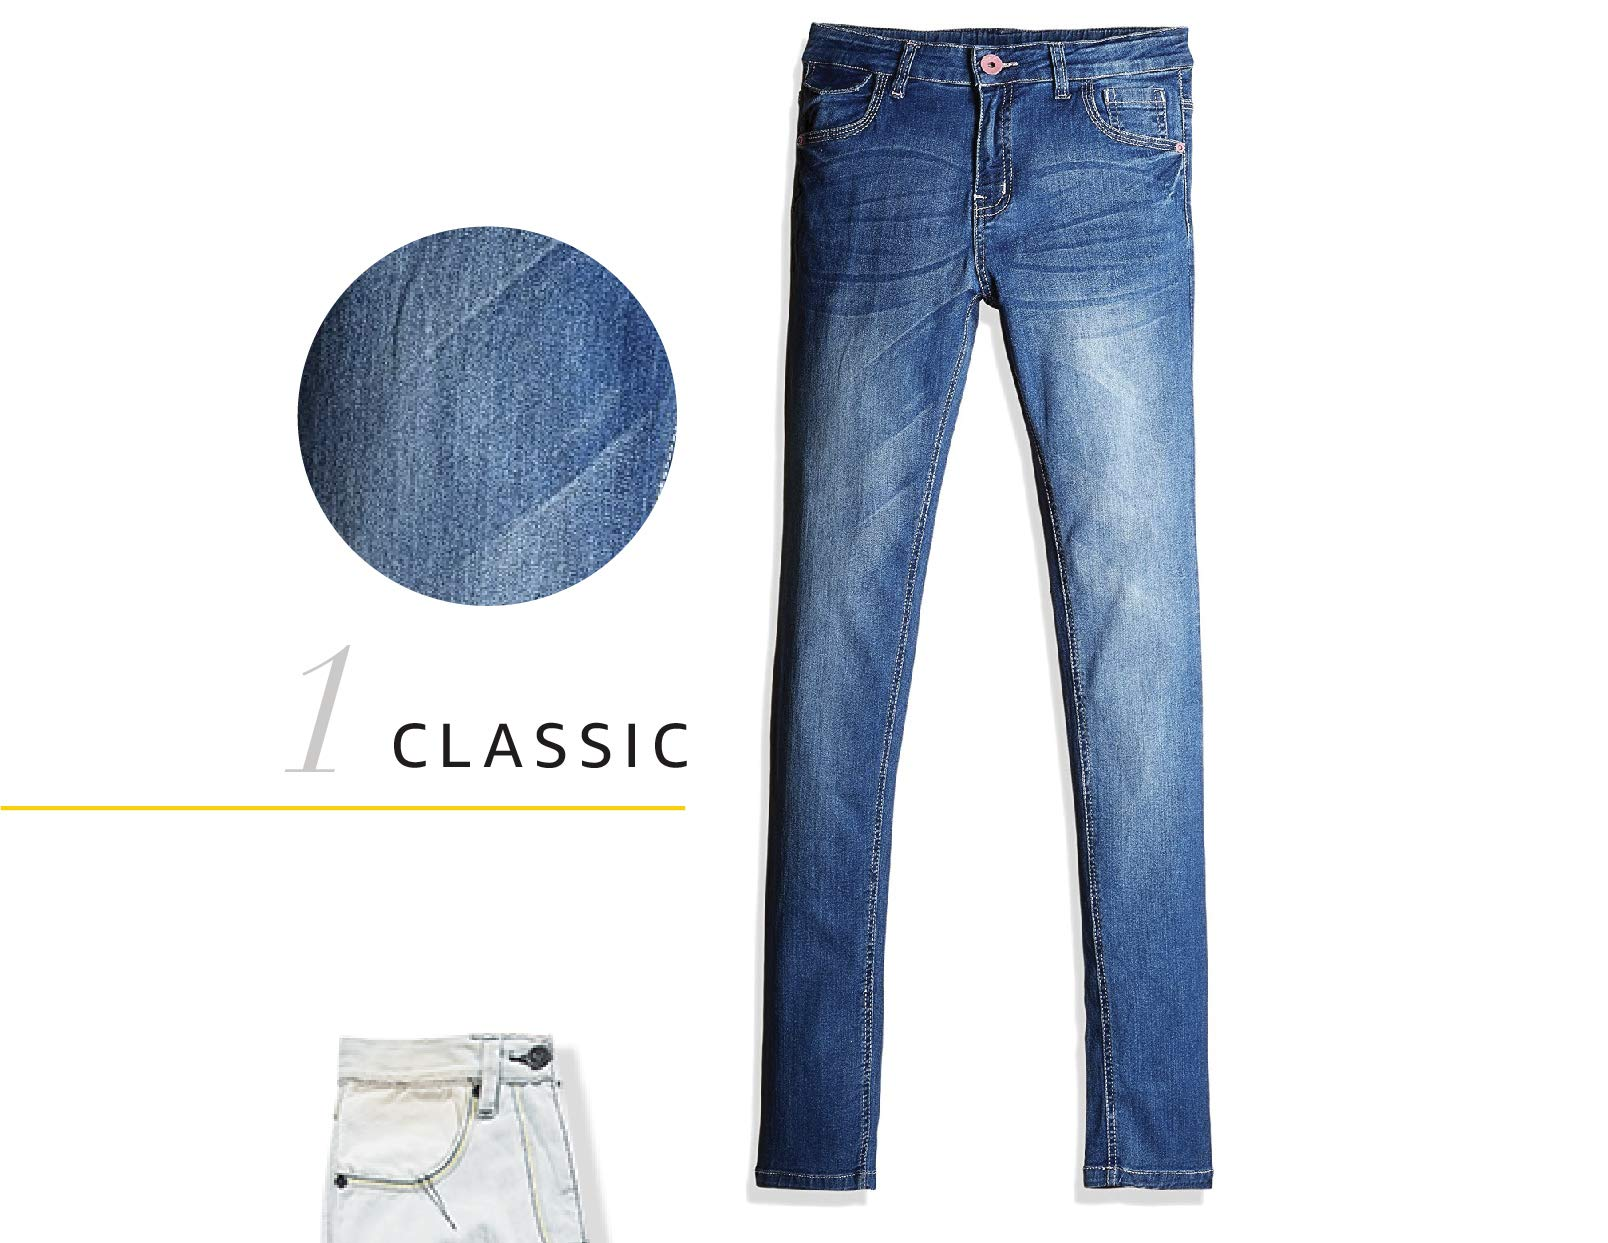 5342151aa2 Jeans  Buy Jeans For Men online at best prices in India - Amazon.in